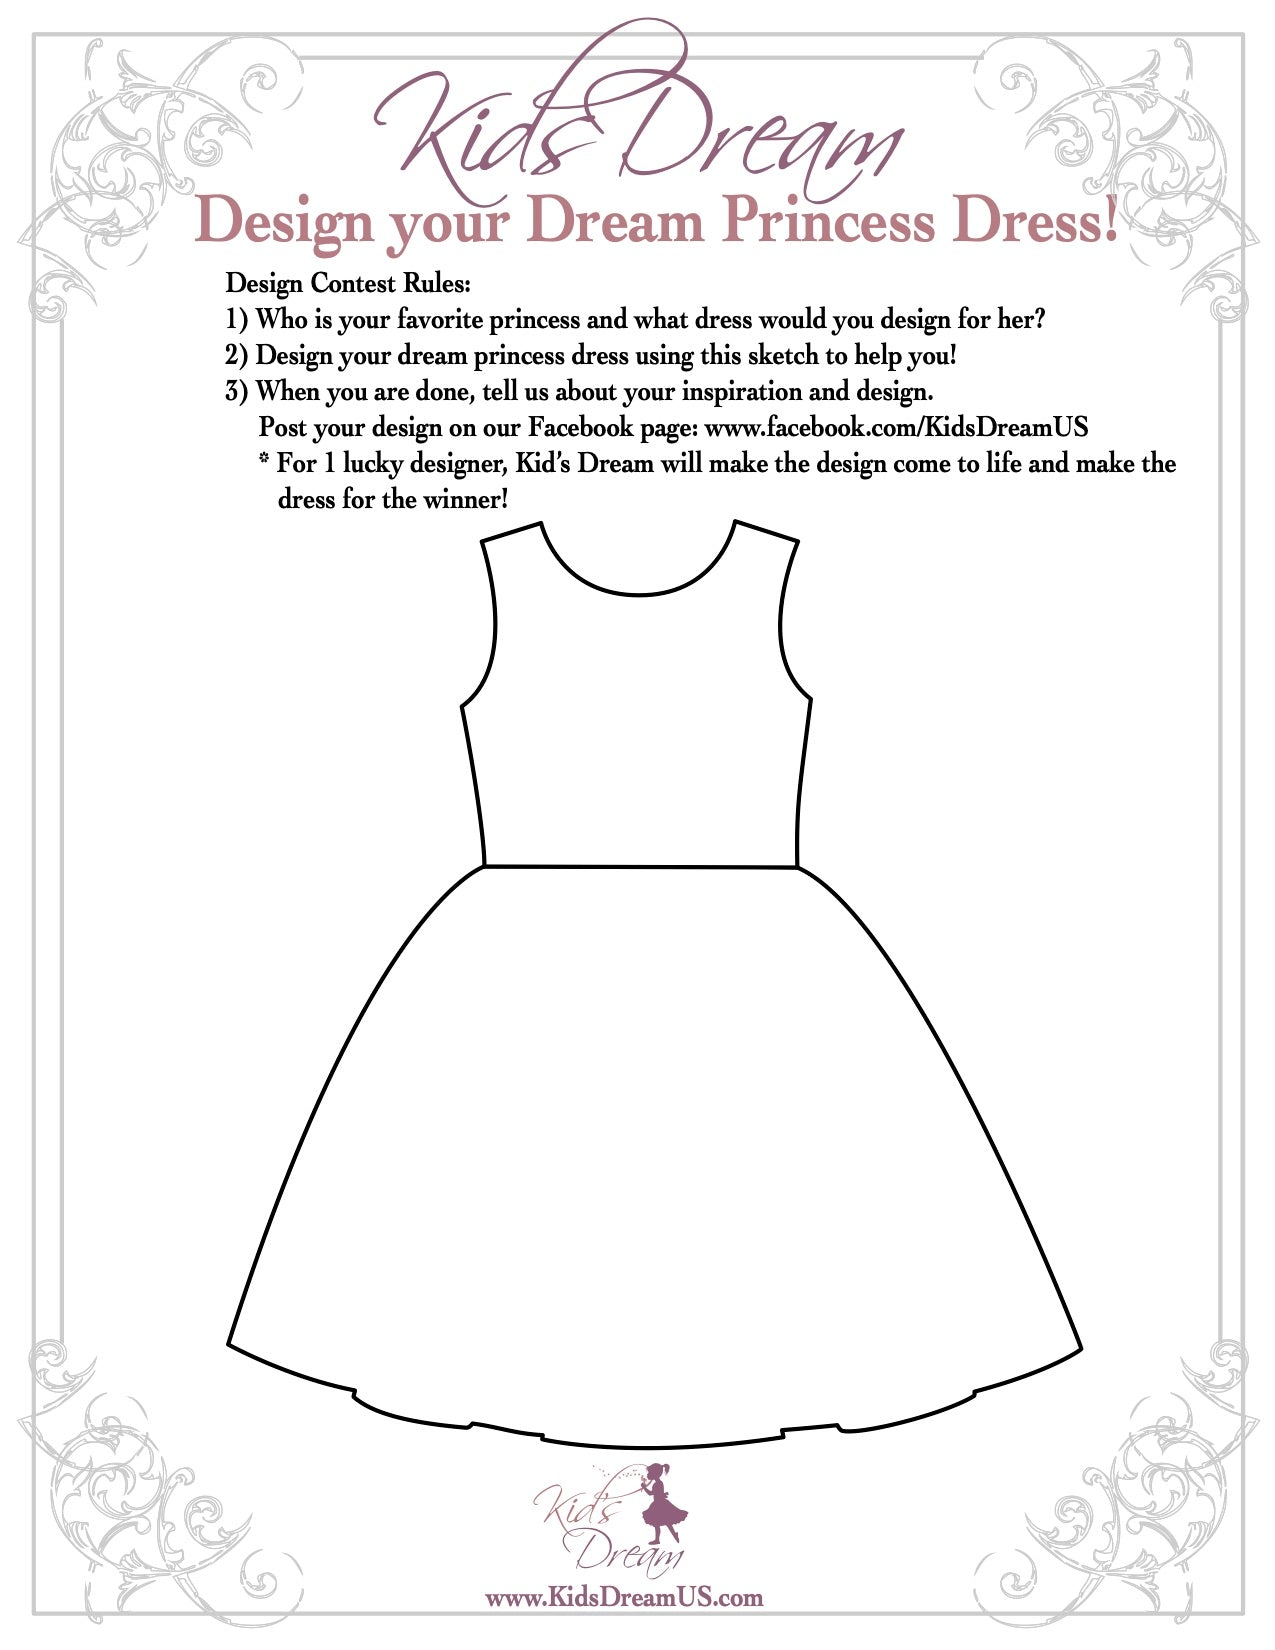 Kid's Dream Dress Design Contest 3/25-4/15!